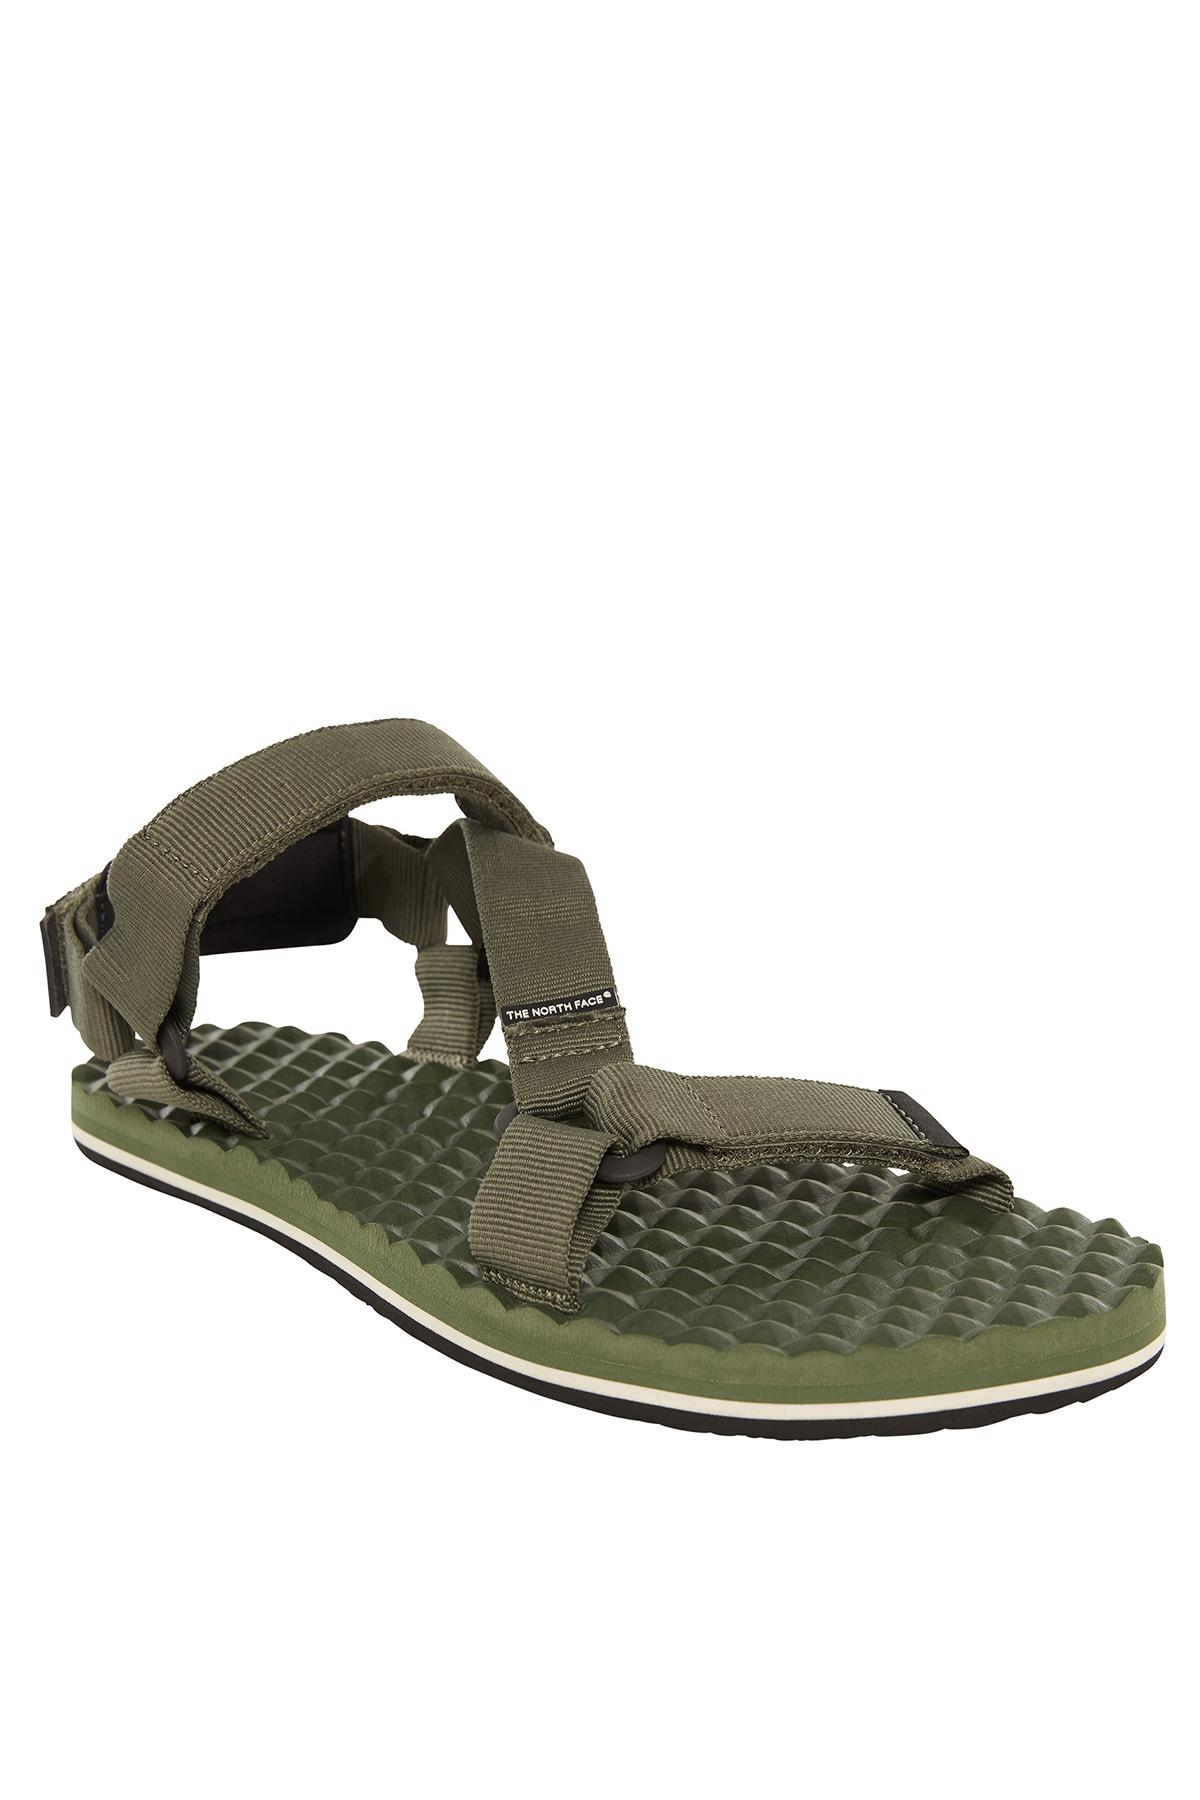 The Northface Erkek Base Camp Switchback Sandal T92Y974Nx Ayakkabı